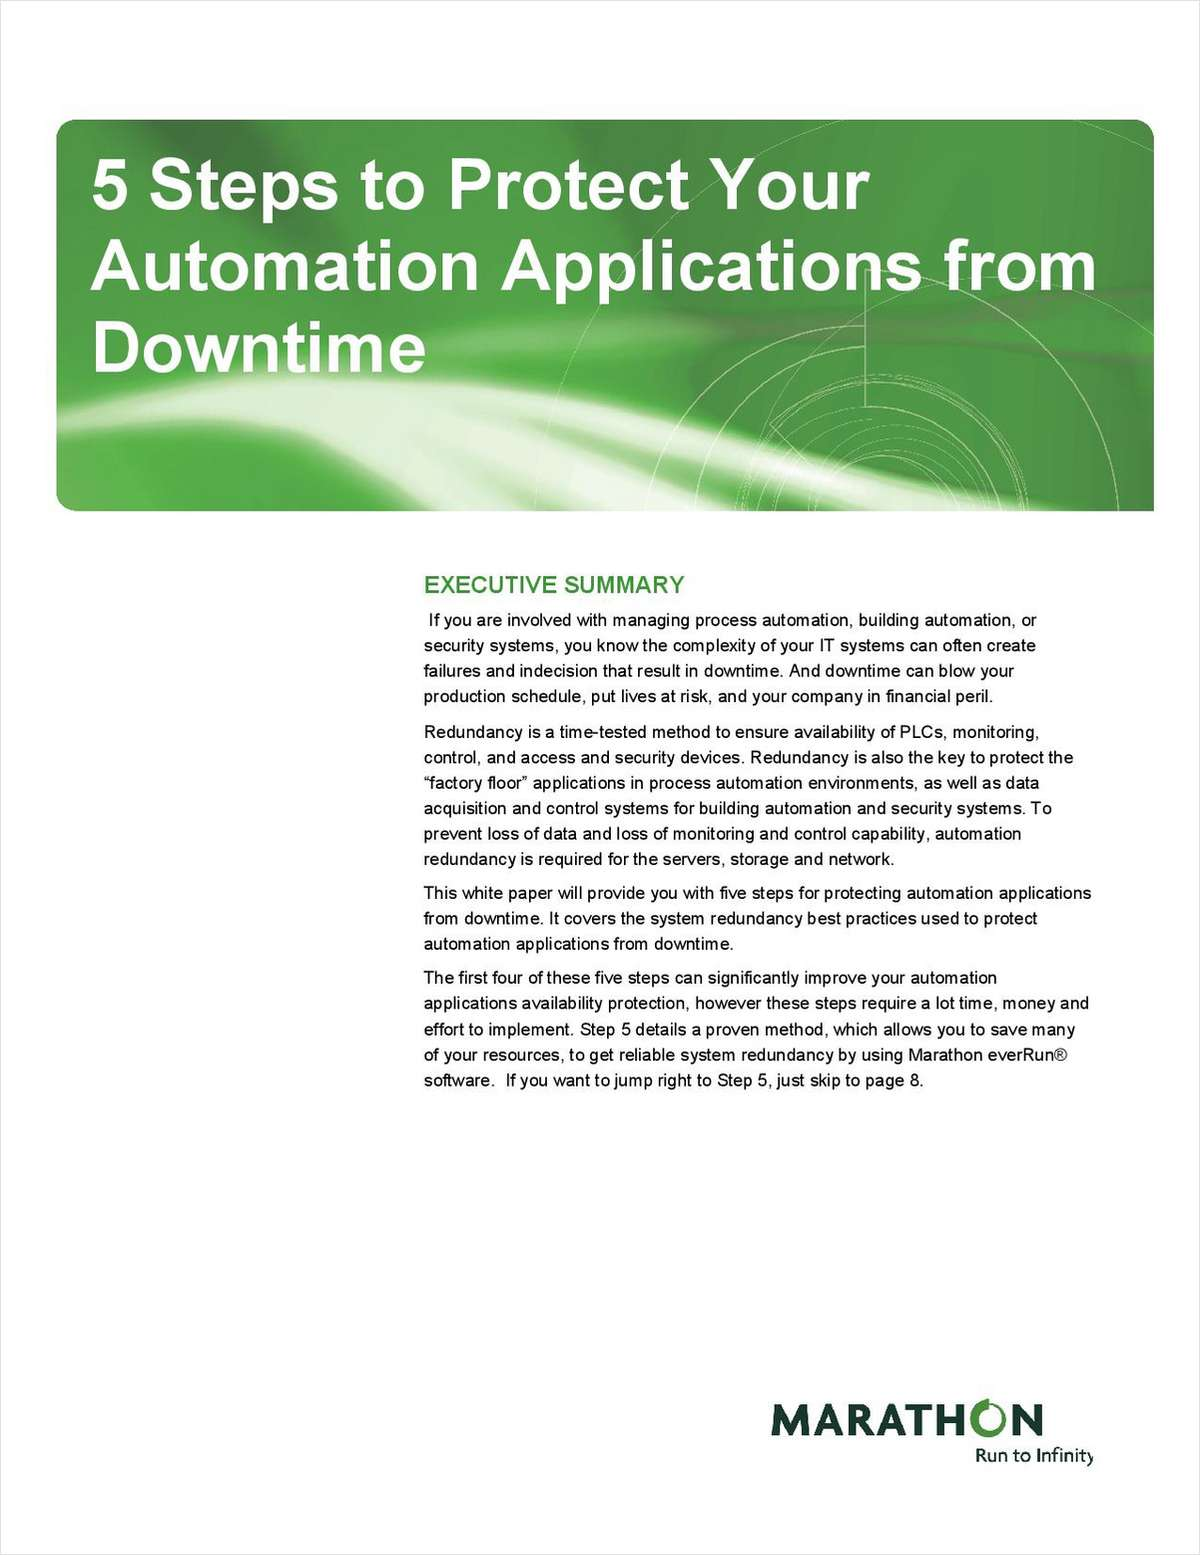 5 Steps to Protect Your Automation Applications from Downtime